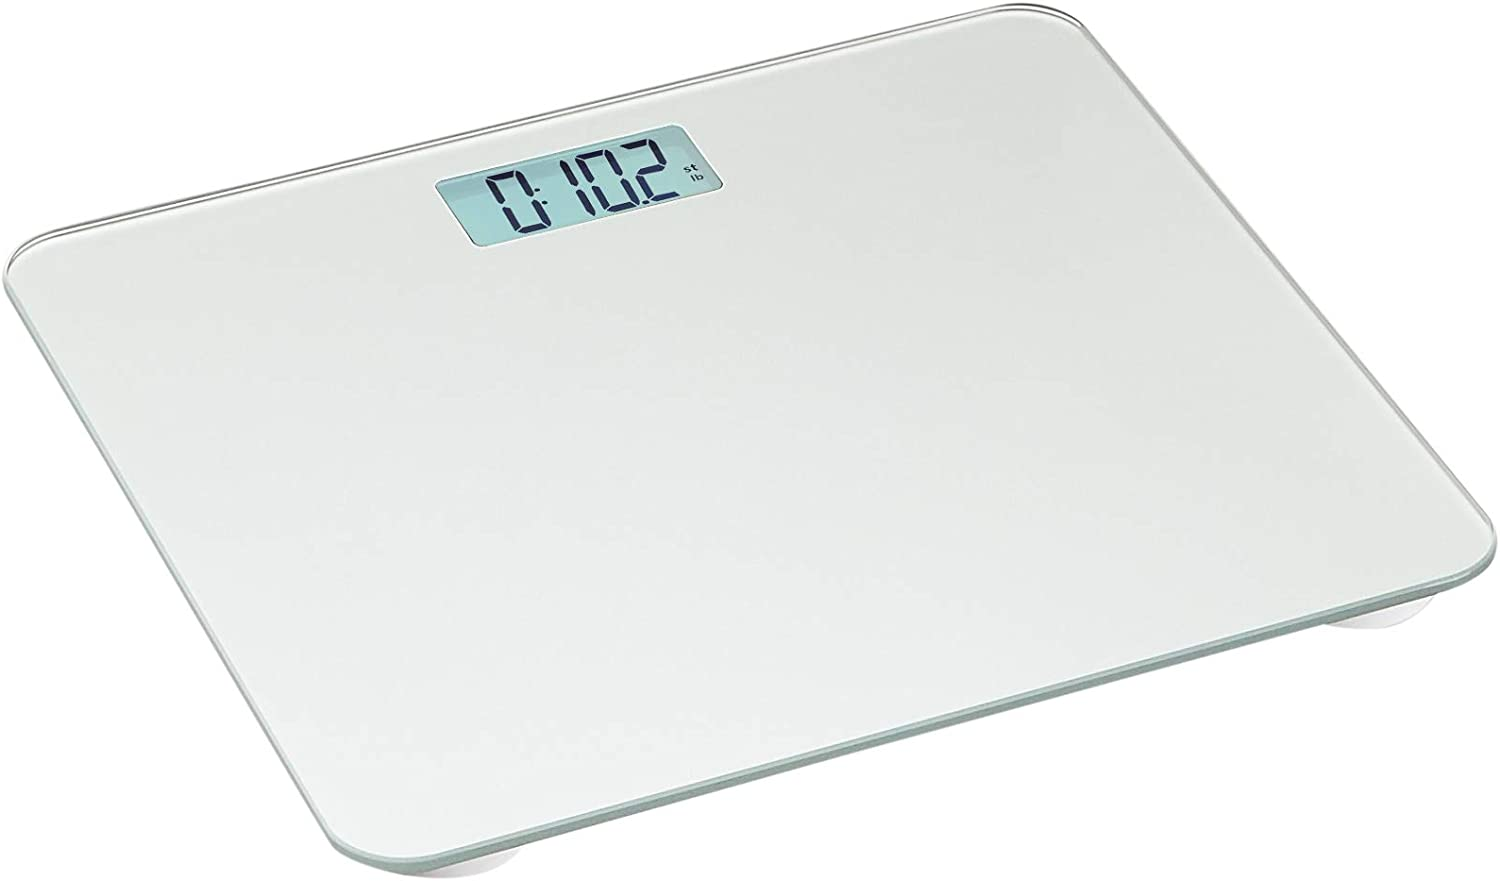 AmazonBasics Body Weight Scale - Auto On/Off Function, Silver